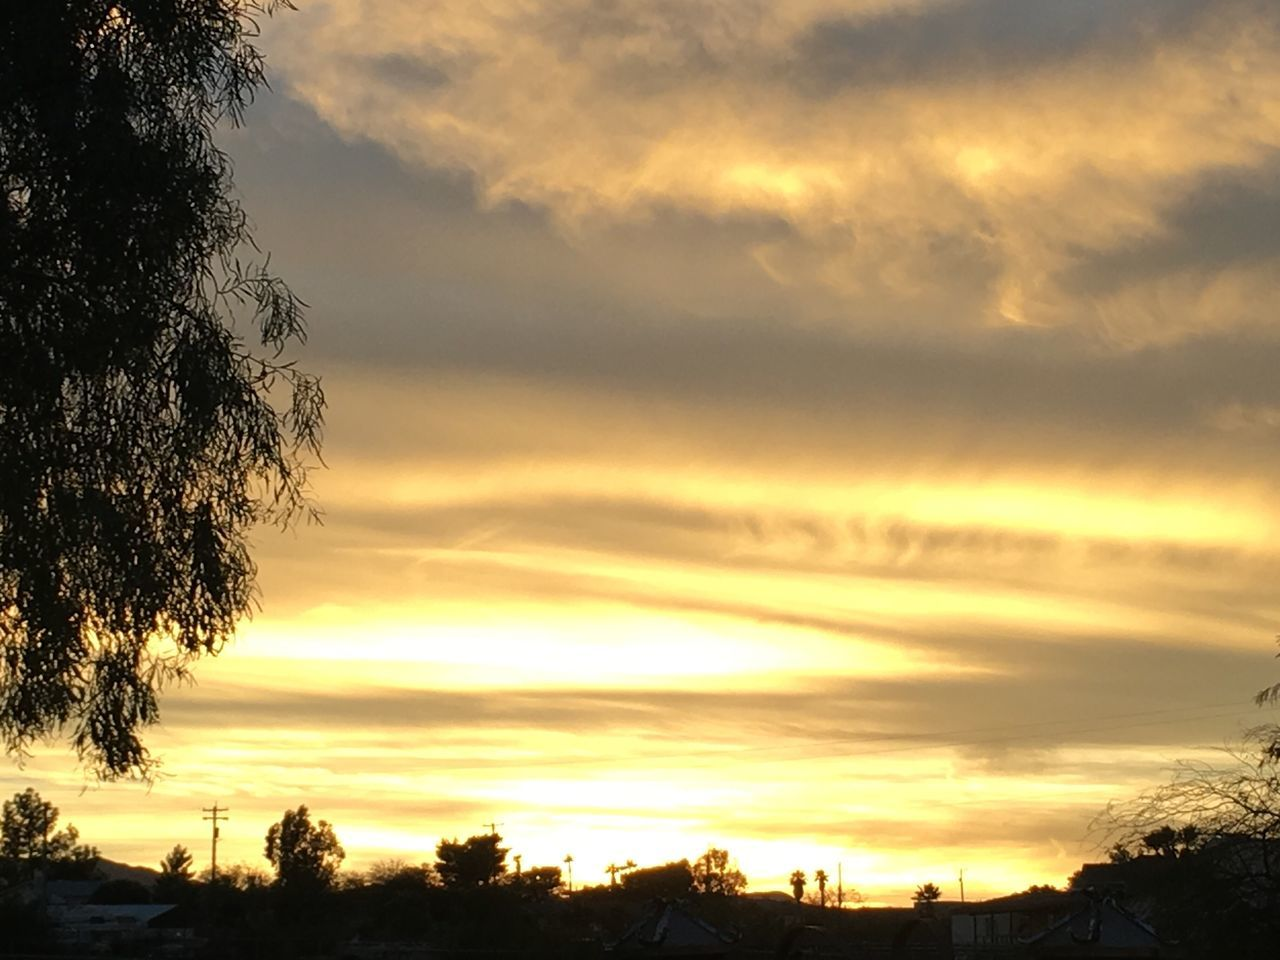 Neighborhood Out My Front Door No Edit/no Filter Sunset Cloud - Sky Tree Silhouette No People Scenics Outdoors